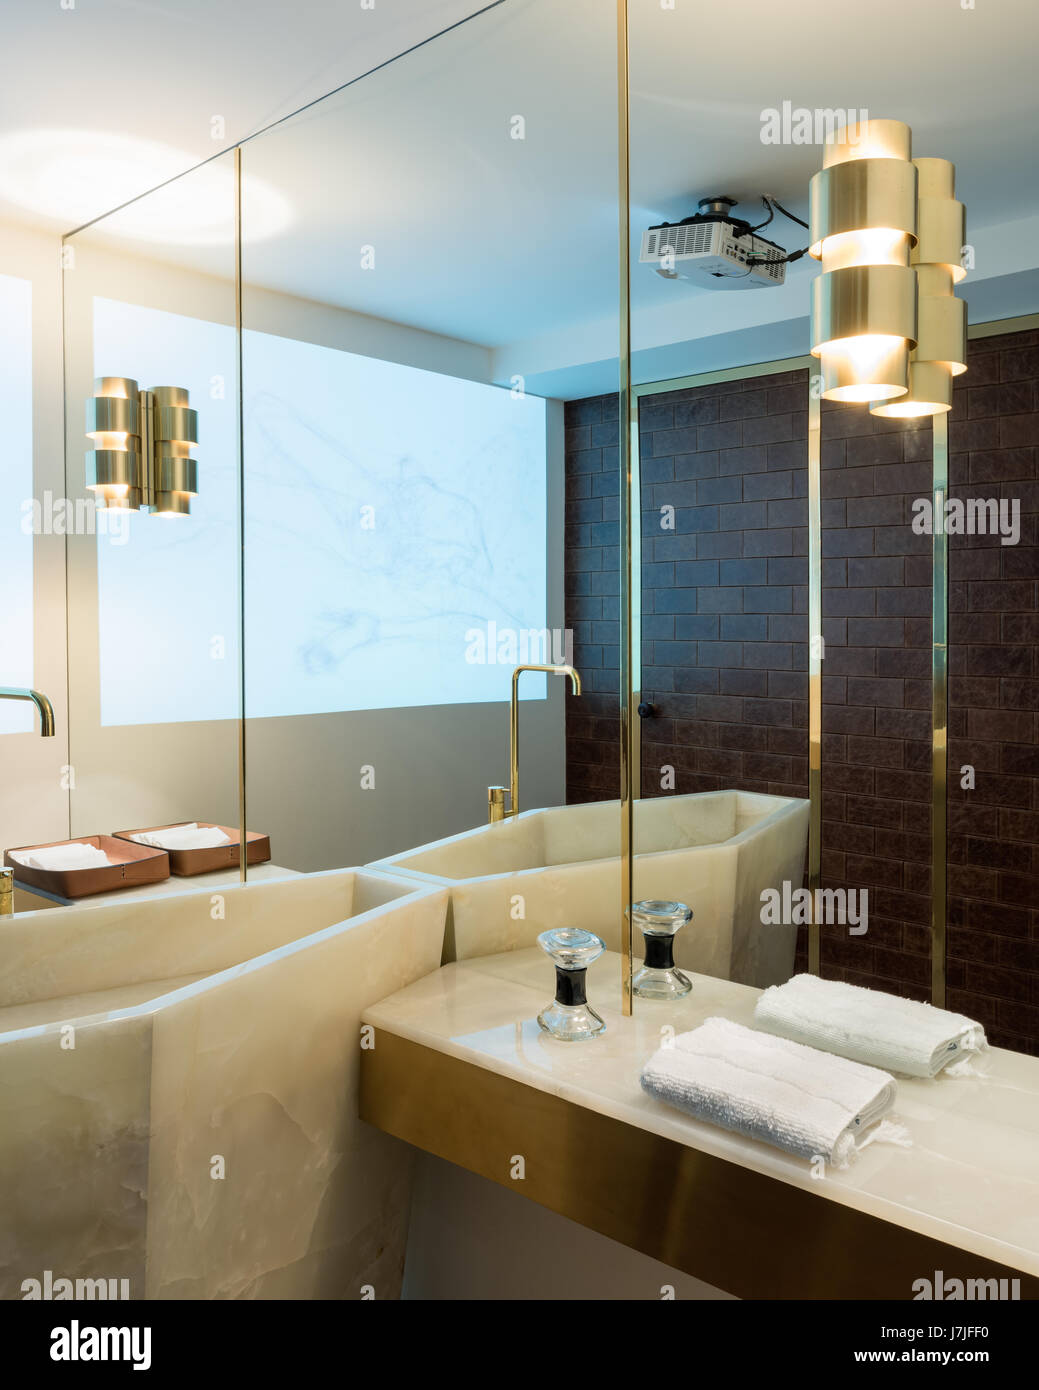 Brass fittings with full length mirror and reflection of marble washstand - Stock Image